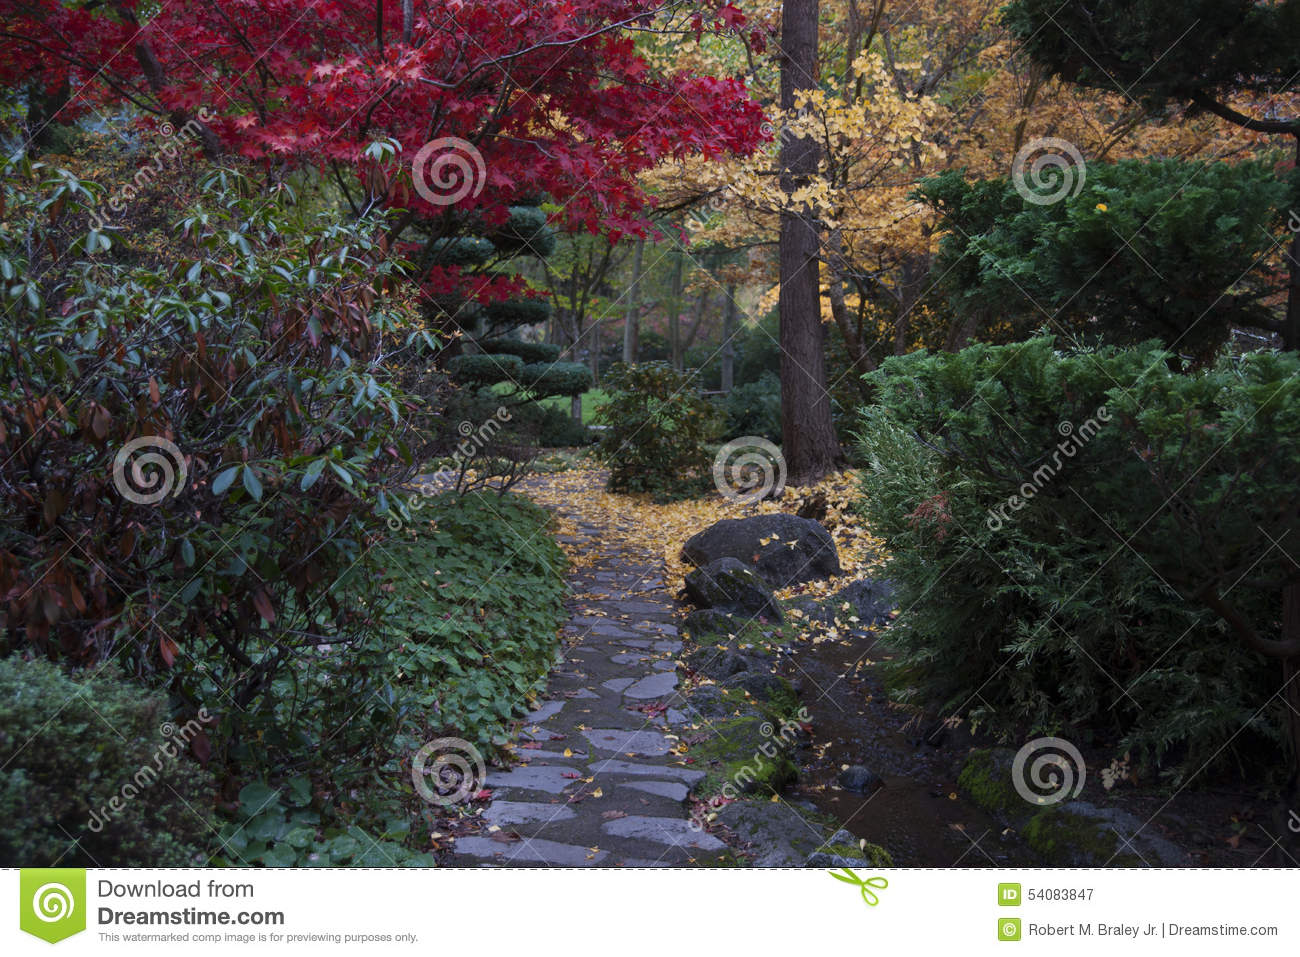 Lithia Park Ashland, Oregon